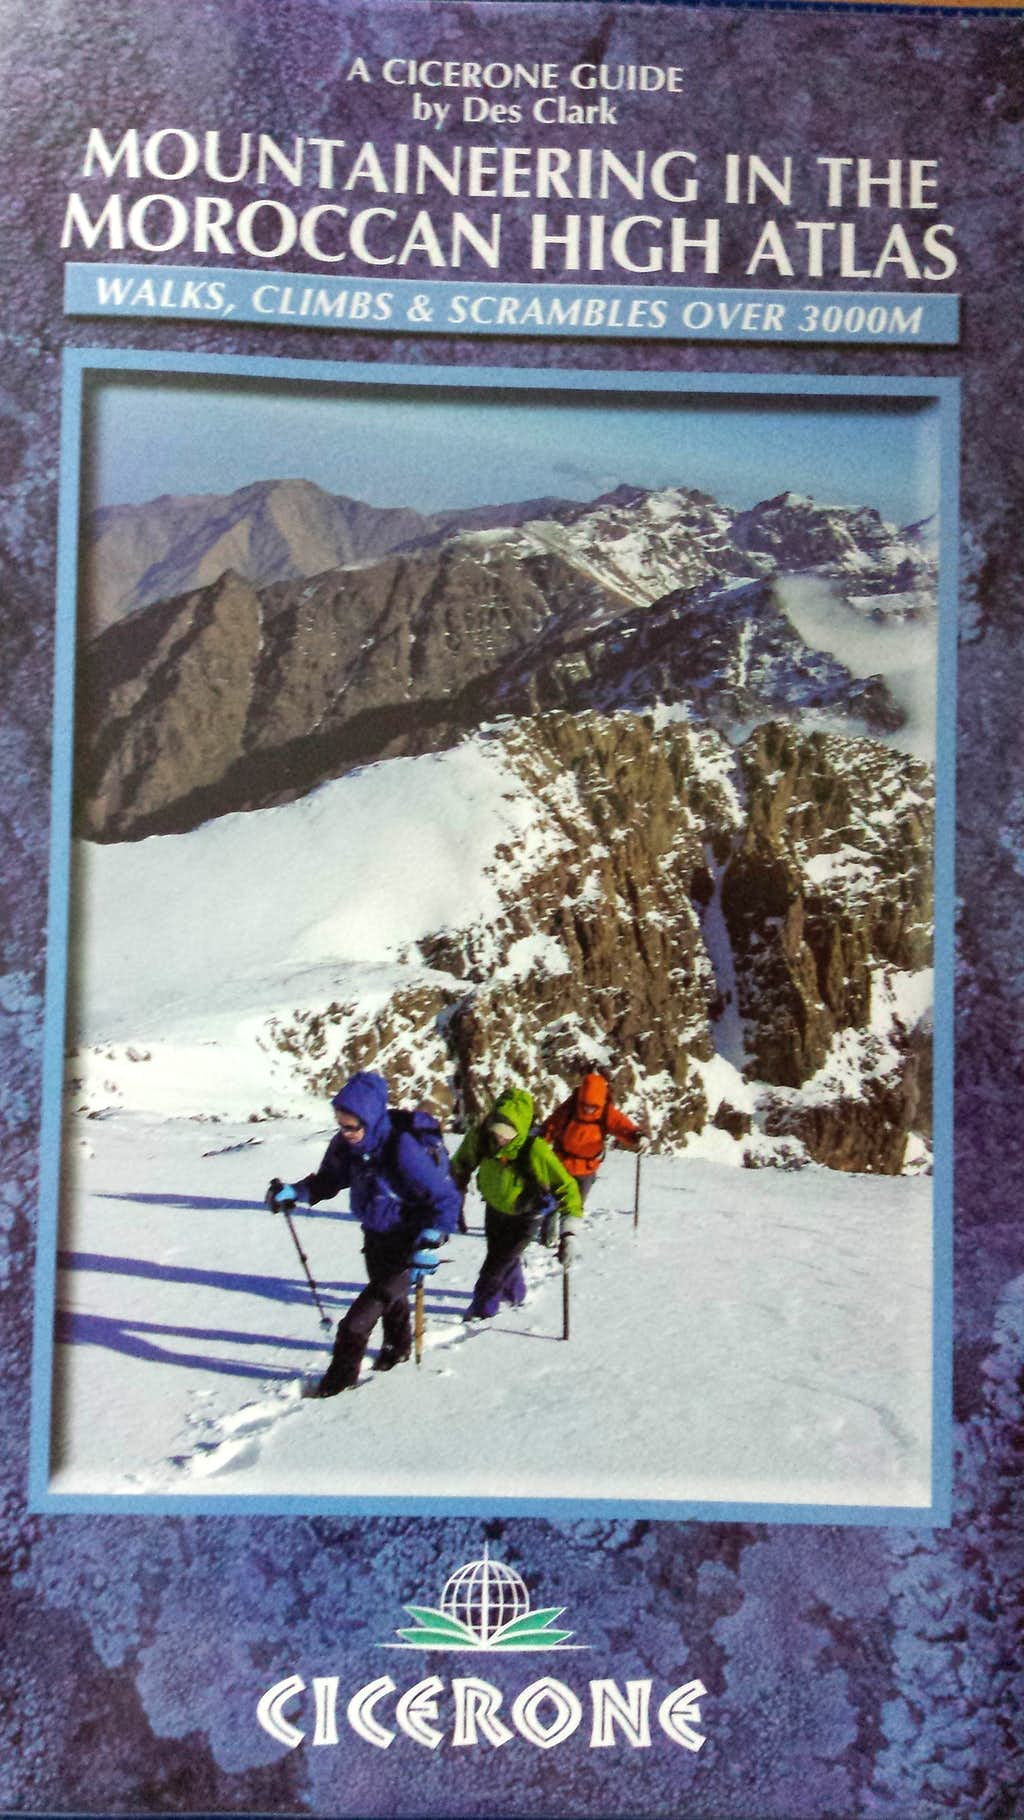 Mountaineering in the Moroccan High Atlas by Cicerone